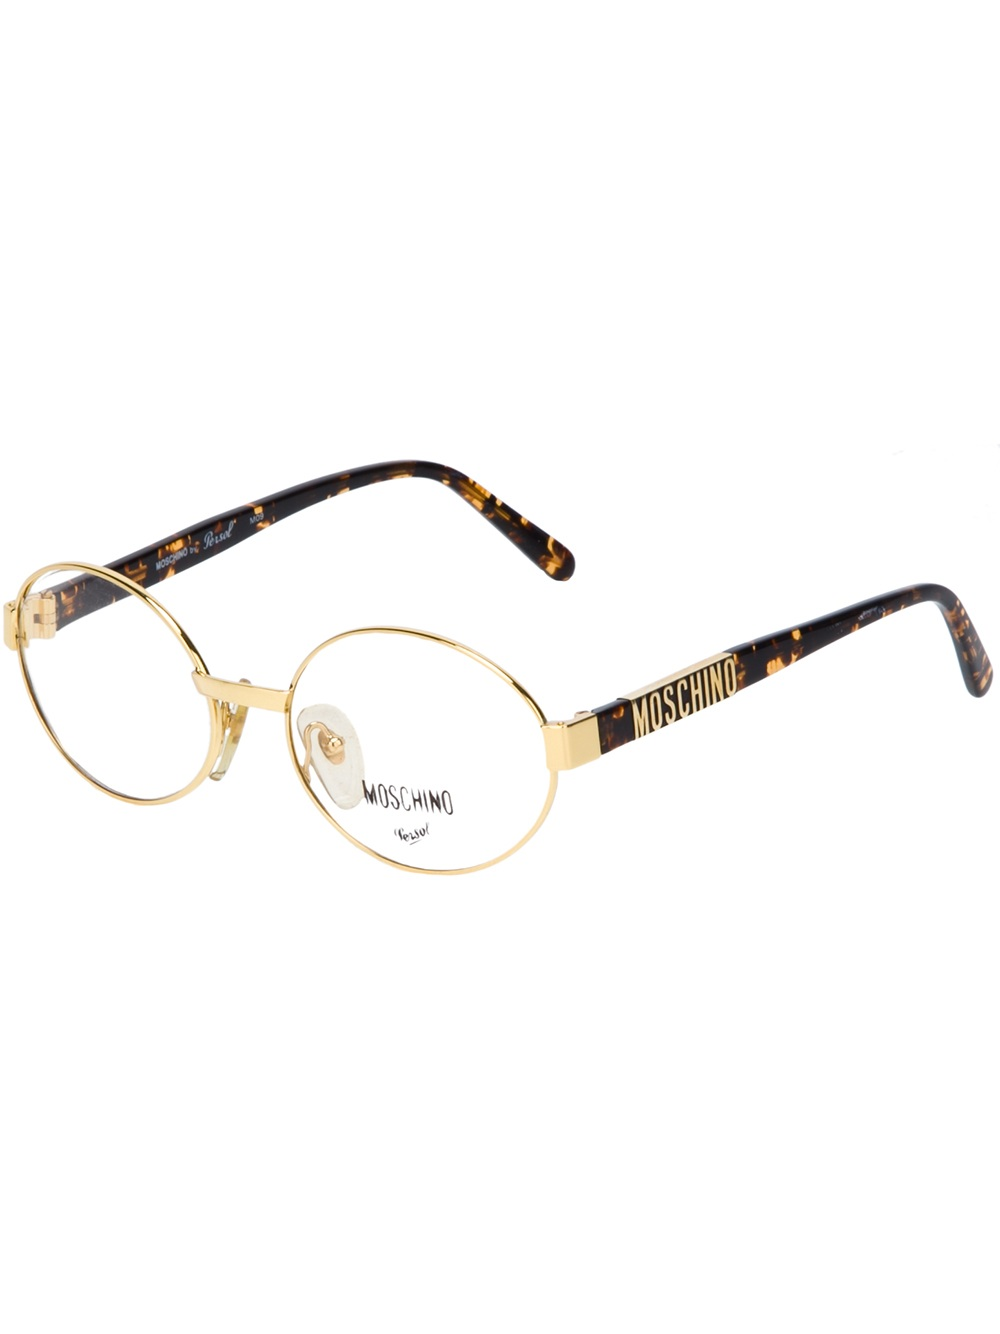 Circle Glasses Gold Frame : Moschino Round Frame Glasses in Gold Lyst